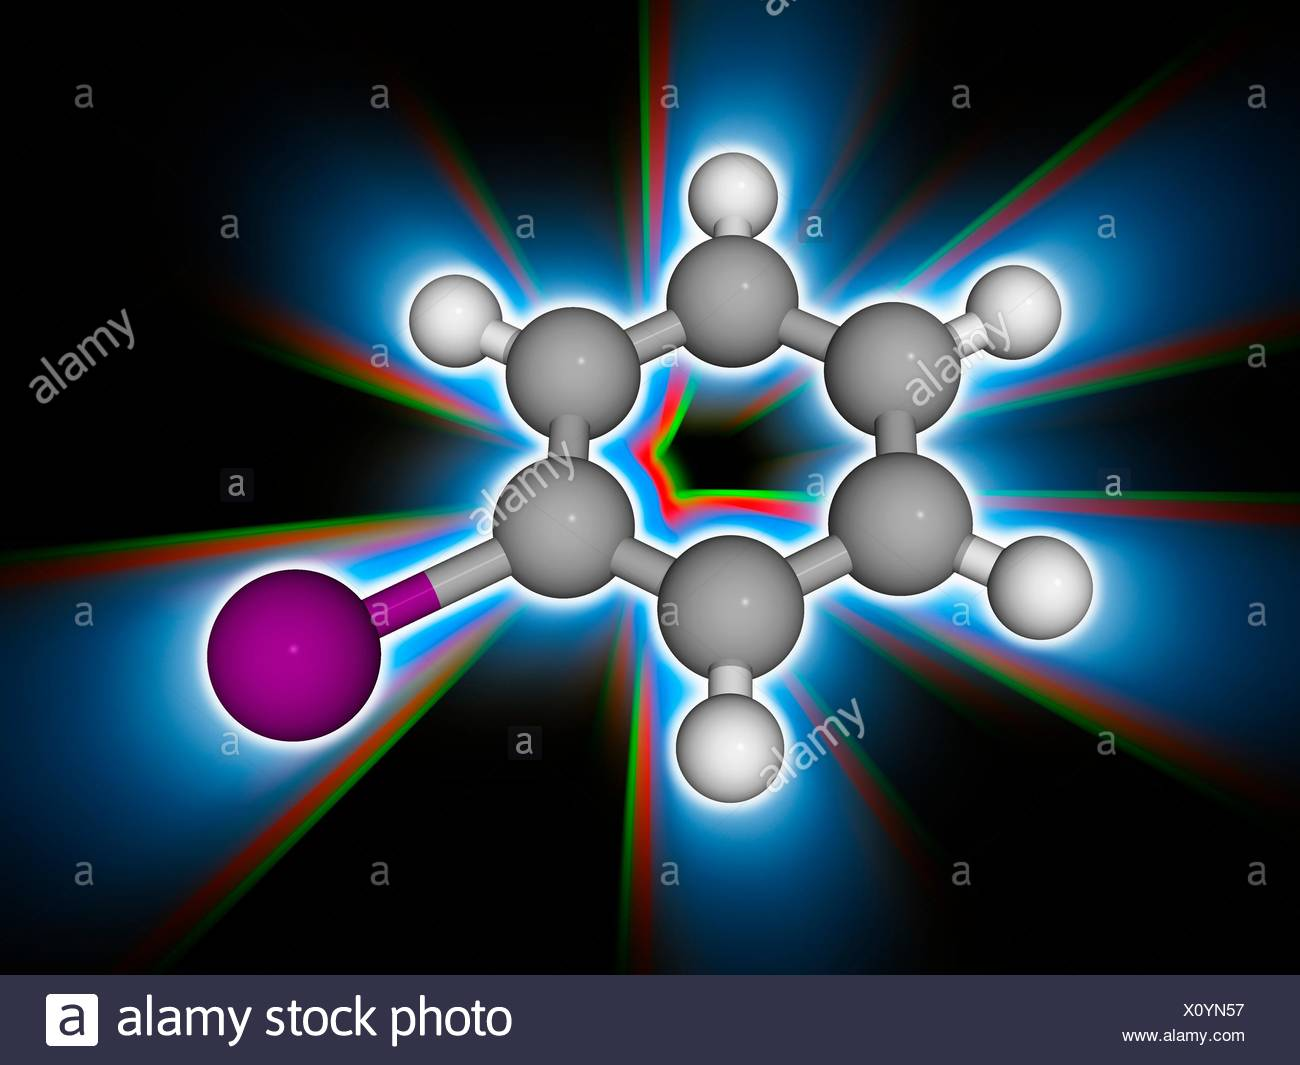 Iodobenzene. Molecular model of the organic aromatic compound iodobenzene (C6.H5.I), used as a synthetic intermediate in organic chemistry. Atoms are represented as spheres and are colour-coded: carbon (grey), hydrogen (white) and iodine (violet). Illustration. Stock Photo